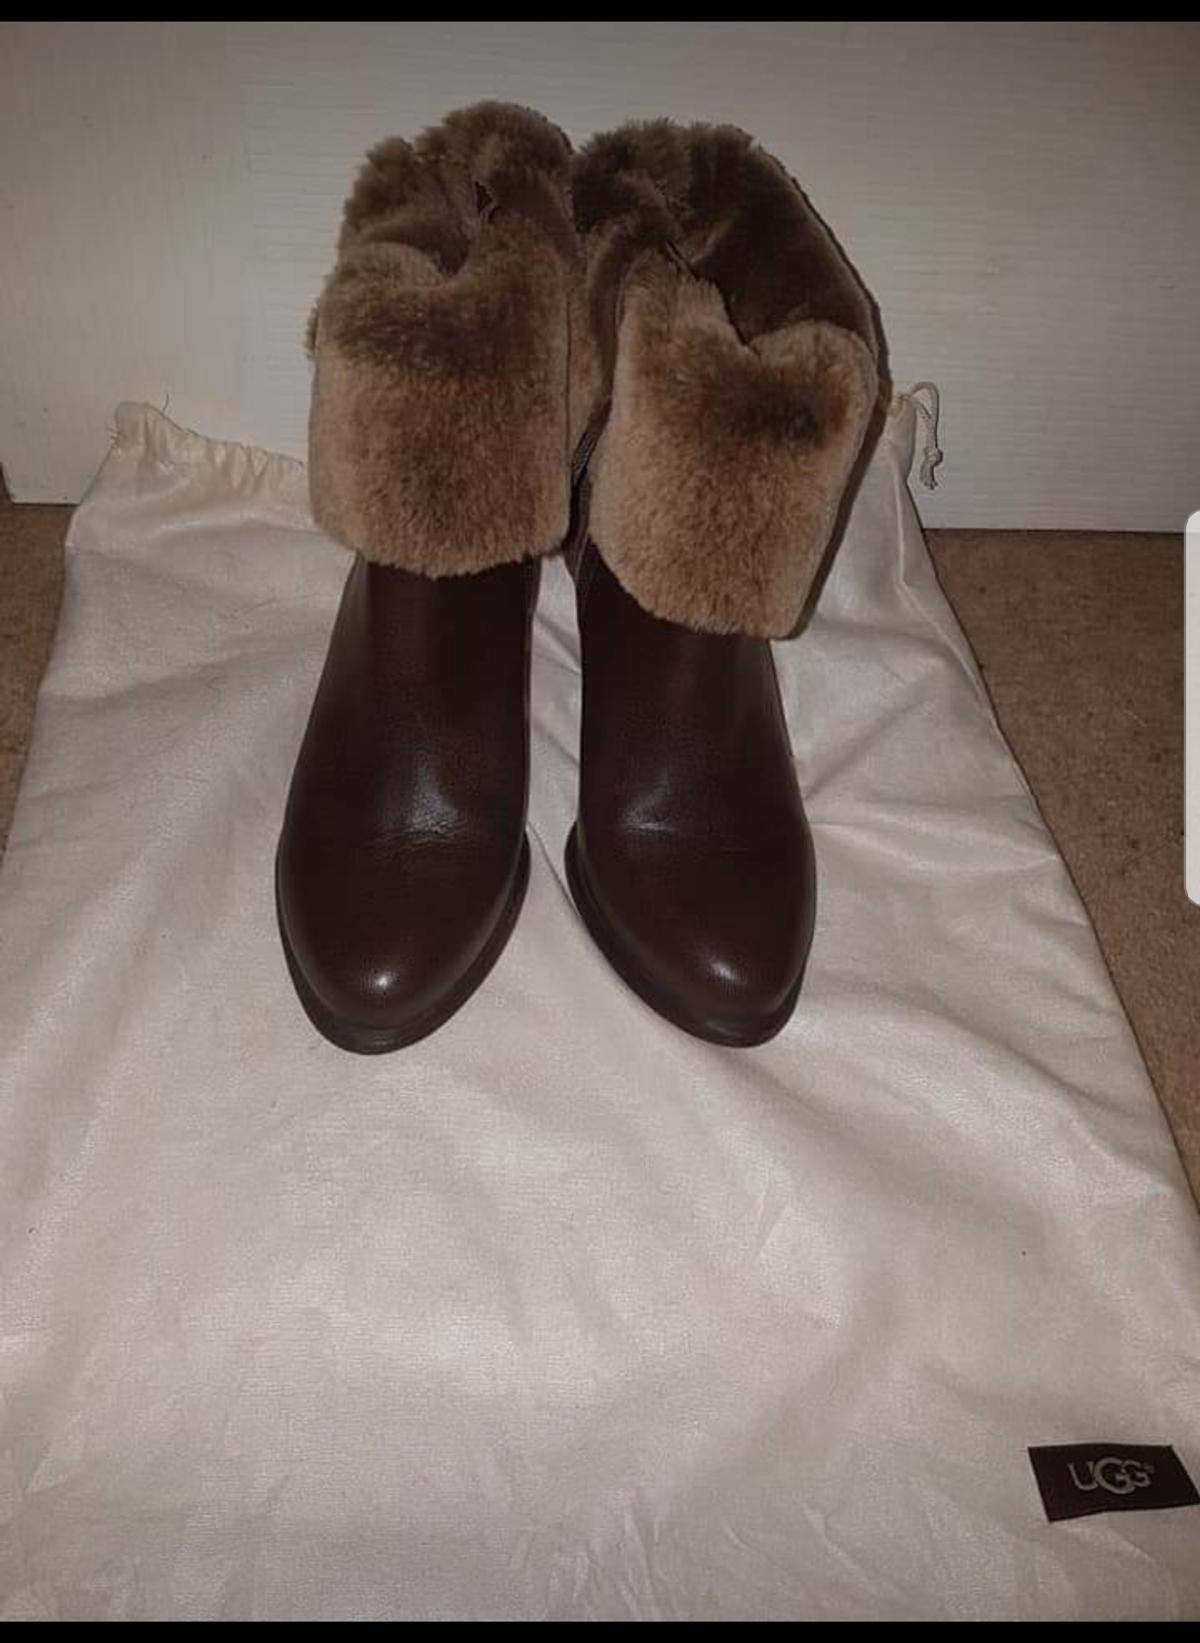 new Ugg Jayne Boots. size 4.5 UK. comes with dust bag.